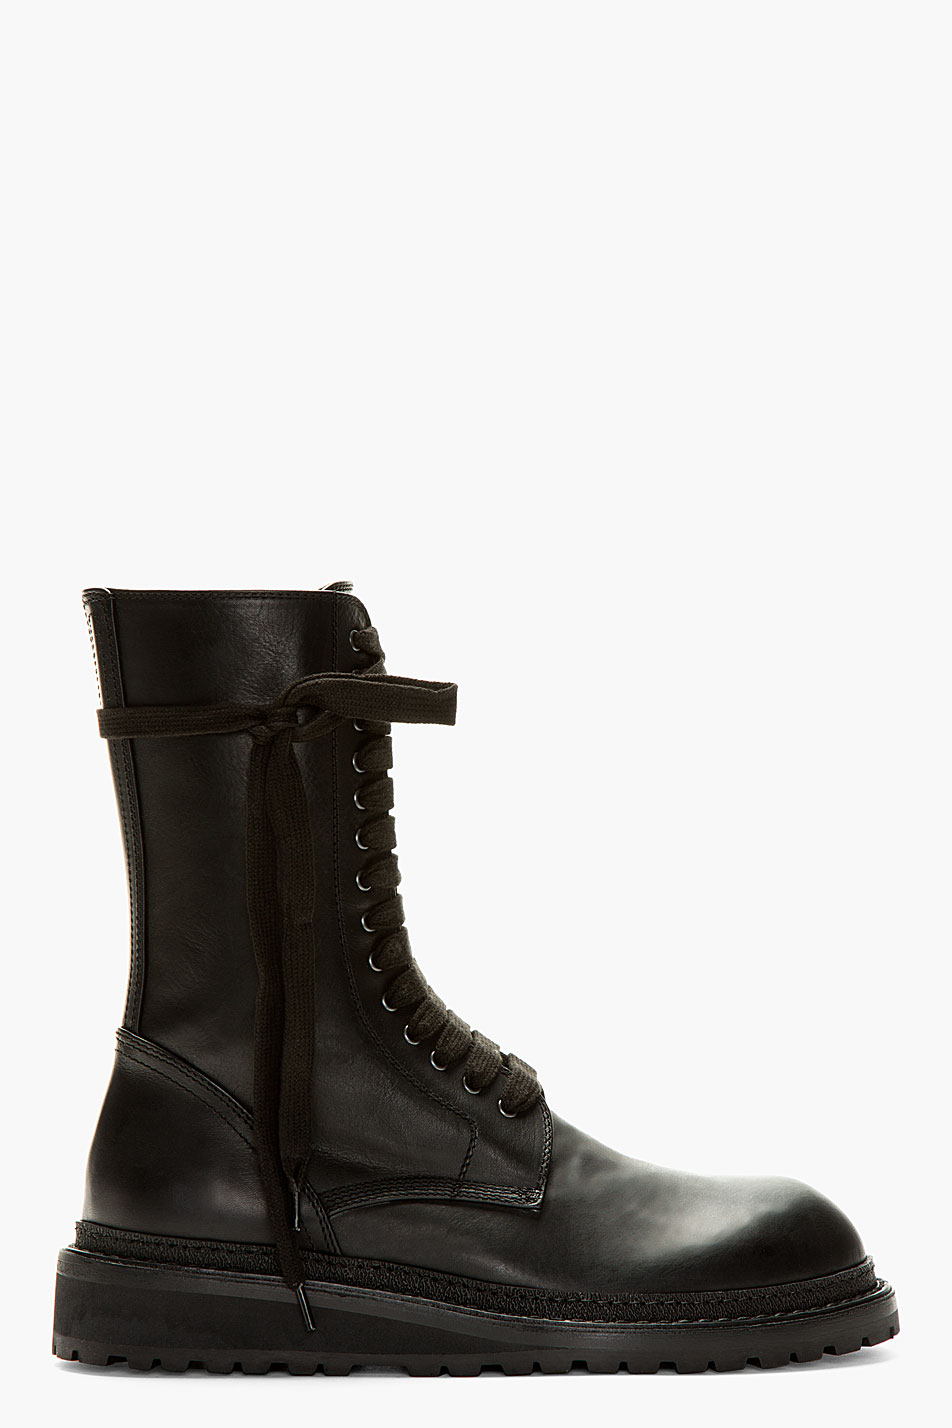 Ann demeulemeester Black Leather Tall Lace Up Boots in Black for ...